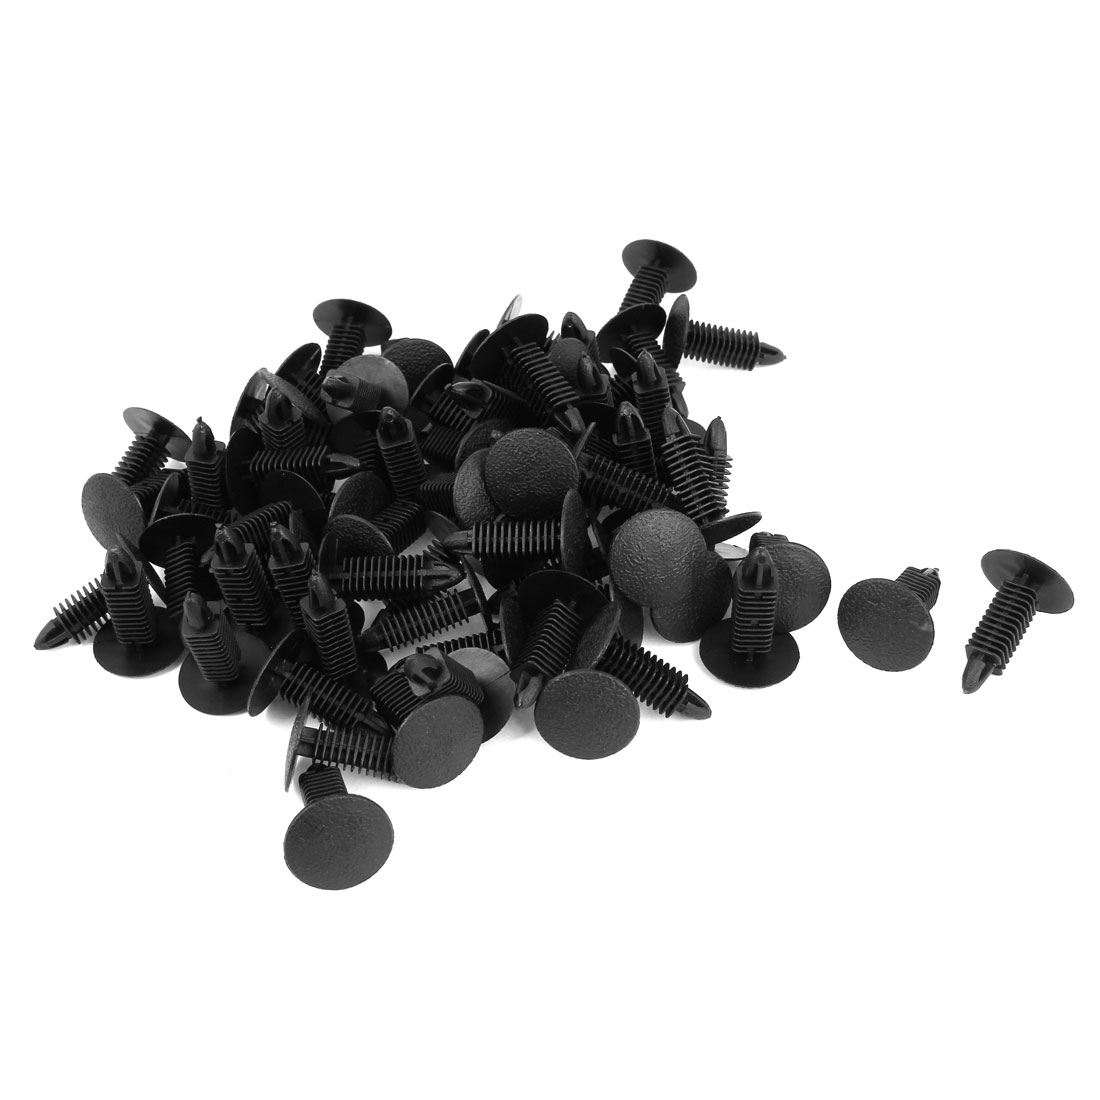 X Autohaux 25mm 18mm Black Plastic Rivets Fastener Car Bumper Push Uxcell Waved Handle Pcb Circuit Board Anti Static Brush Clips 70 Pcs